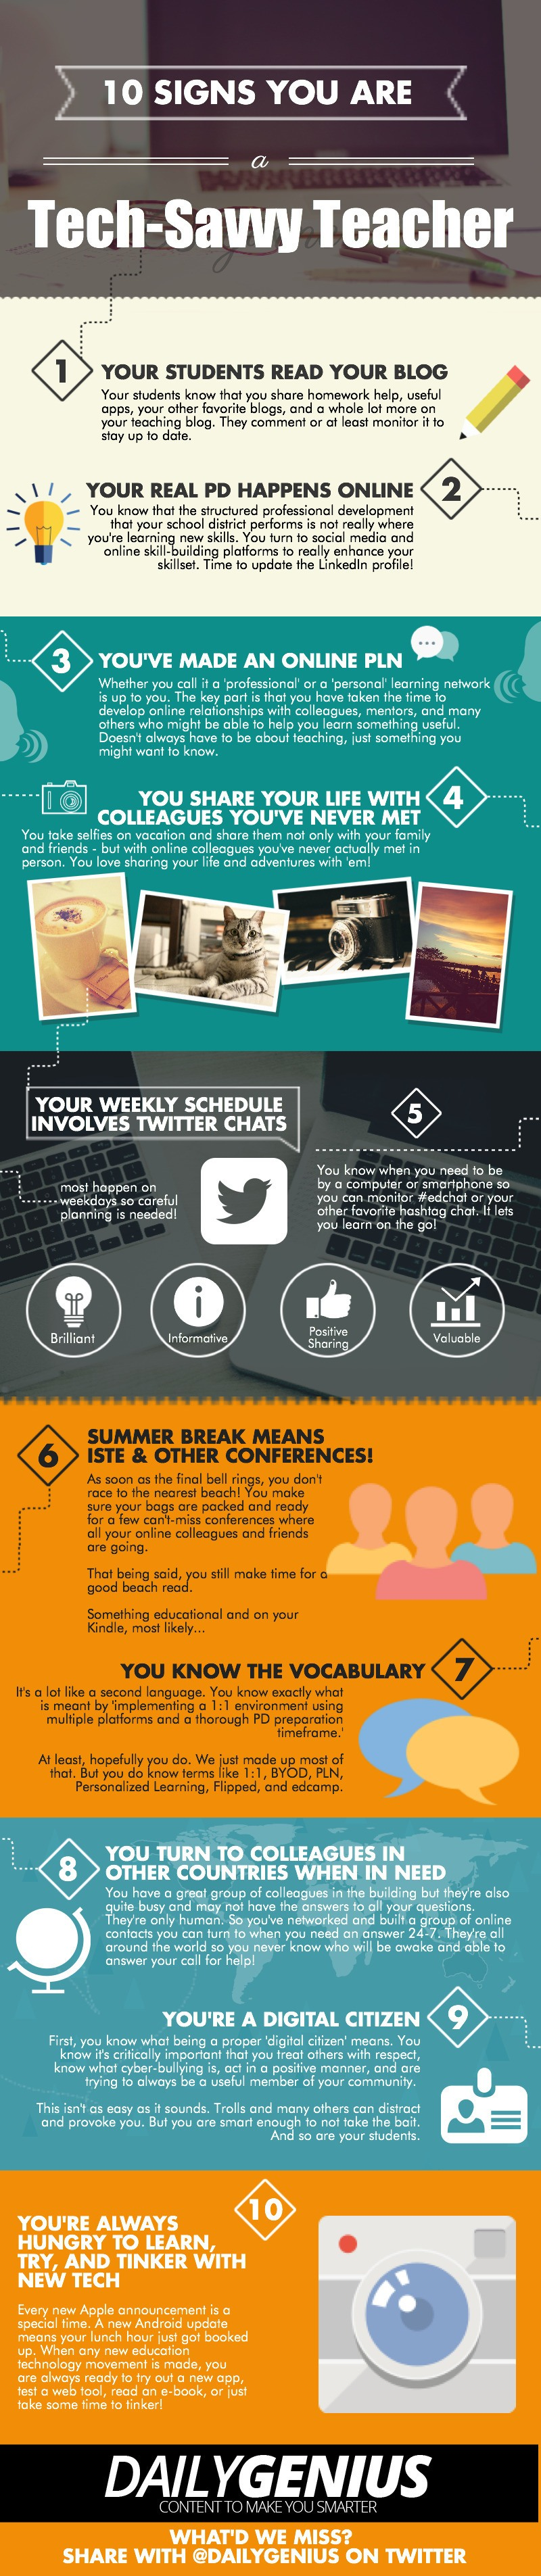 10 Signs You Are a Tech-Savvy Teacher Infographic